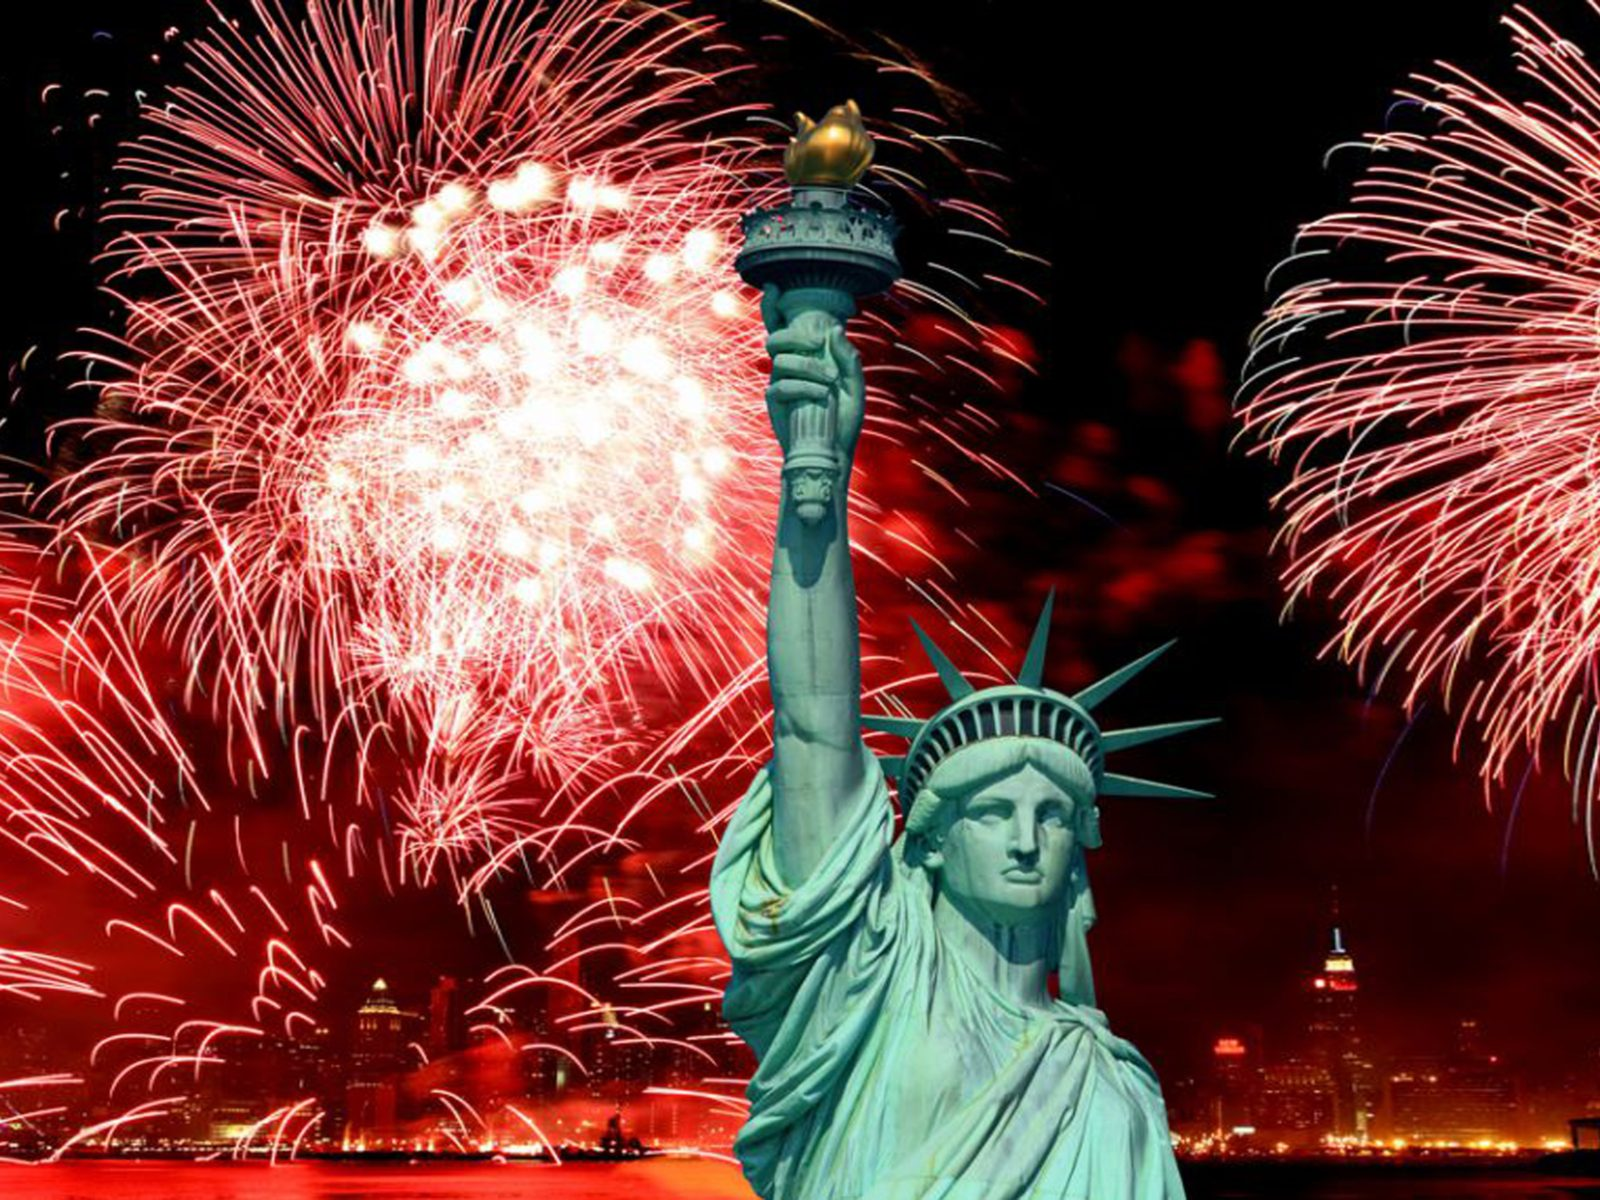 Christmas Wallpaper Hd Android The Statue Of Liberty And 4th Of July Celebration